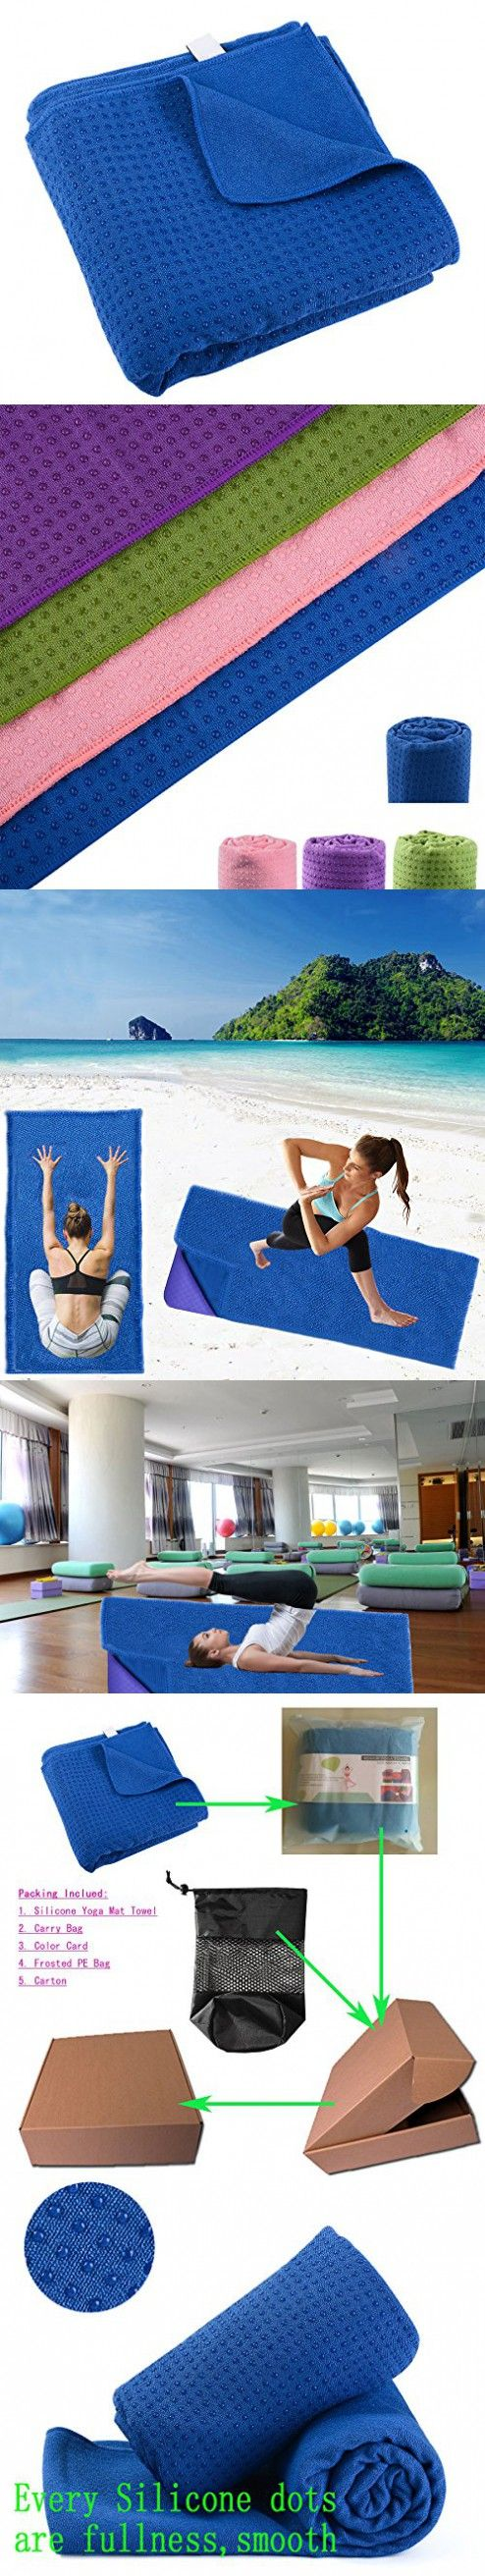 """Yoga Mat Towel 100% Microfiber with Silicone Beads Blue (72""""x26"""") Ultra Absorbent Anti-slip Fast Drying with Ultra Firm Grip for Hot Yoga Pilates Workout Exercise with Free Carry Bag"""